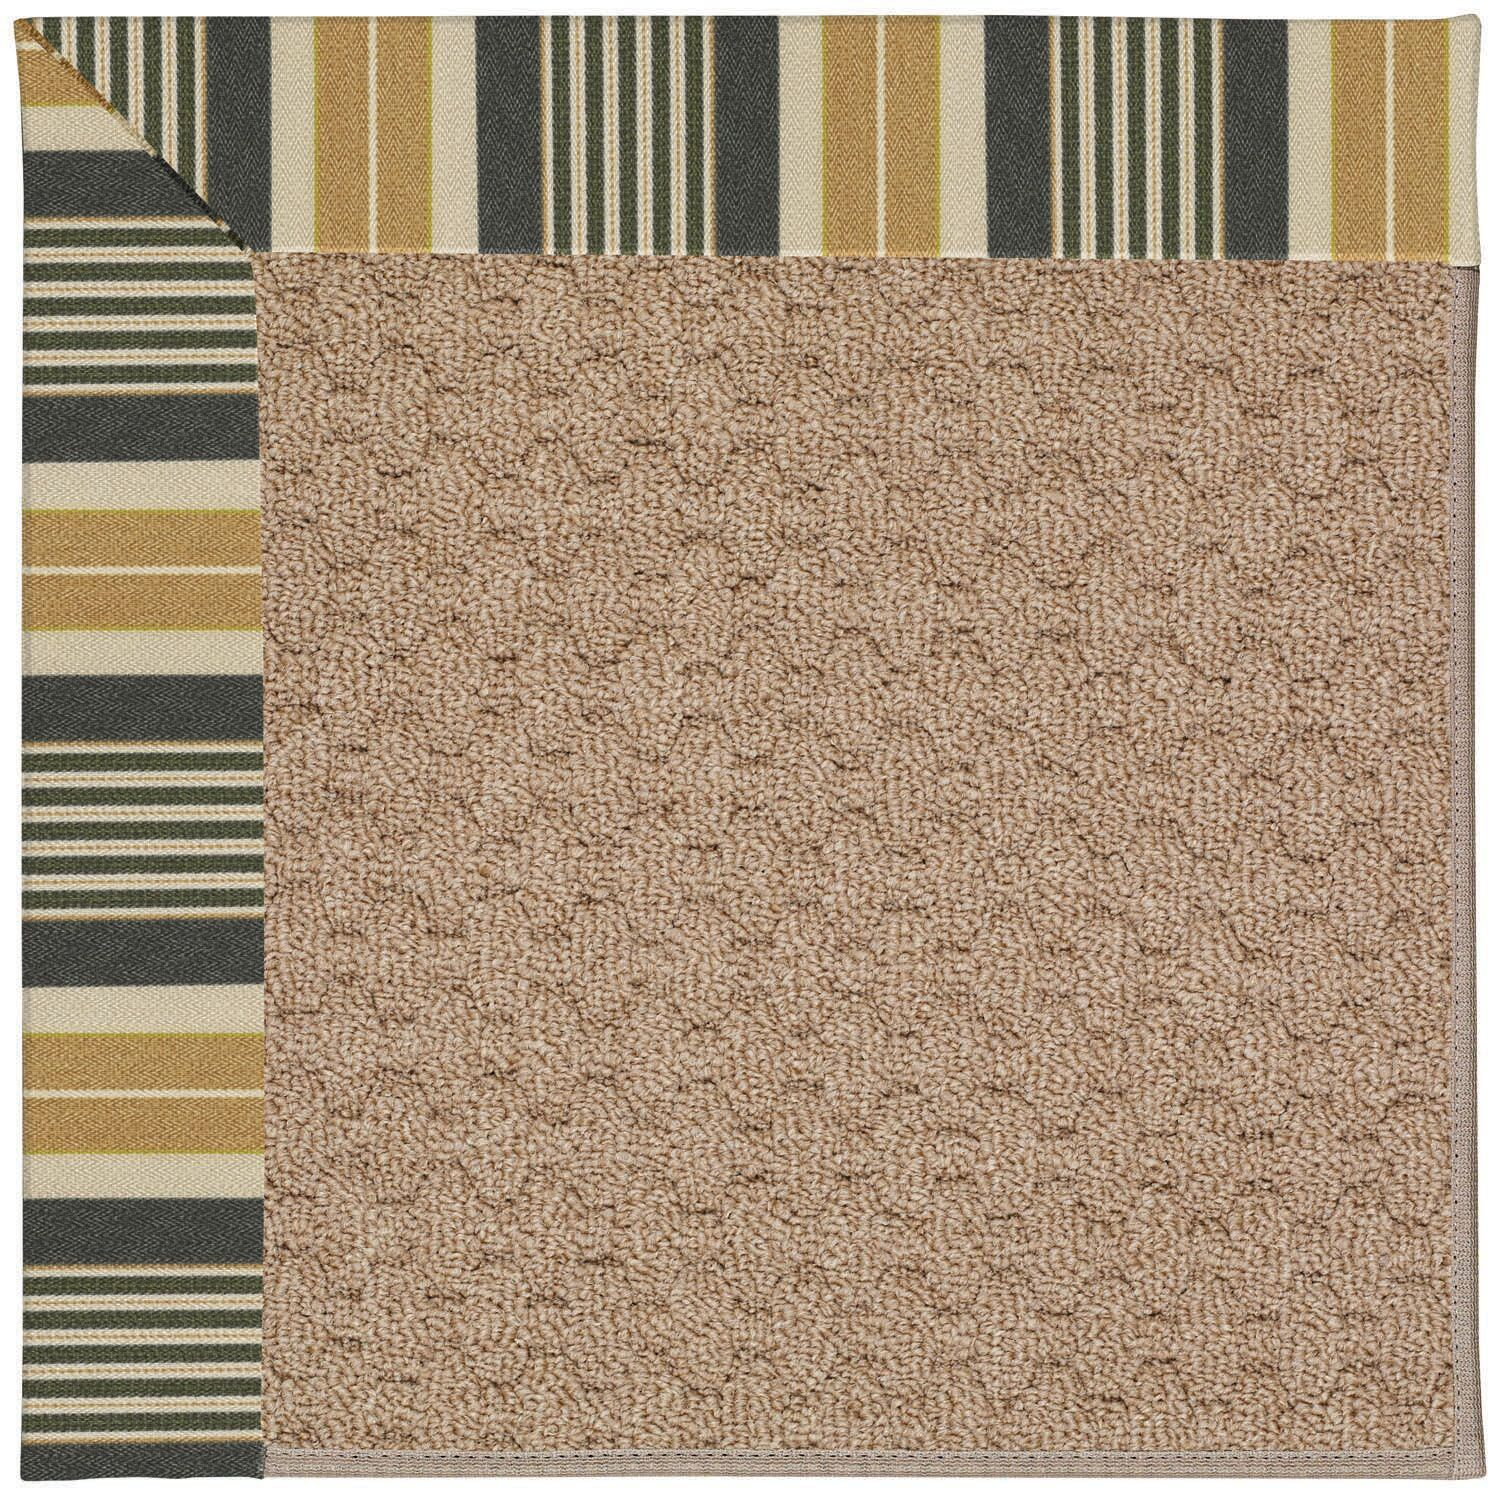 Lisle Machine Tufted Indoor/Outdoor Area Rug Rug Size: Rectangle 7' x 9'